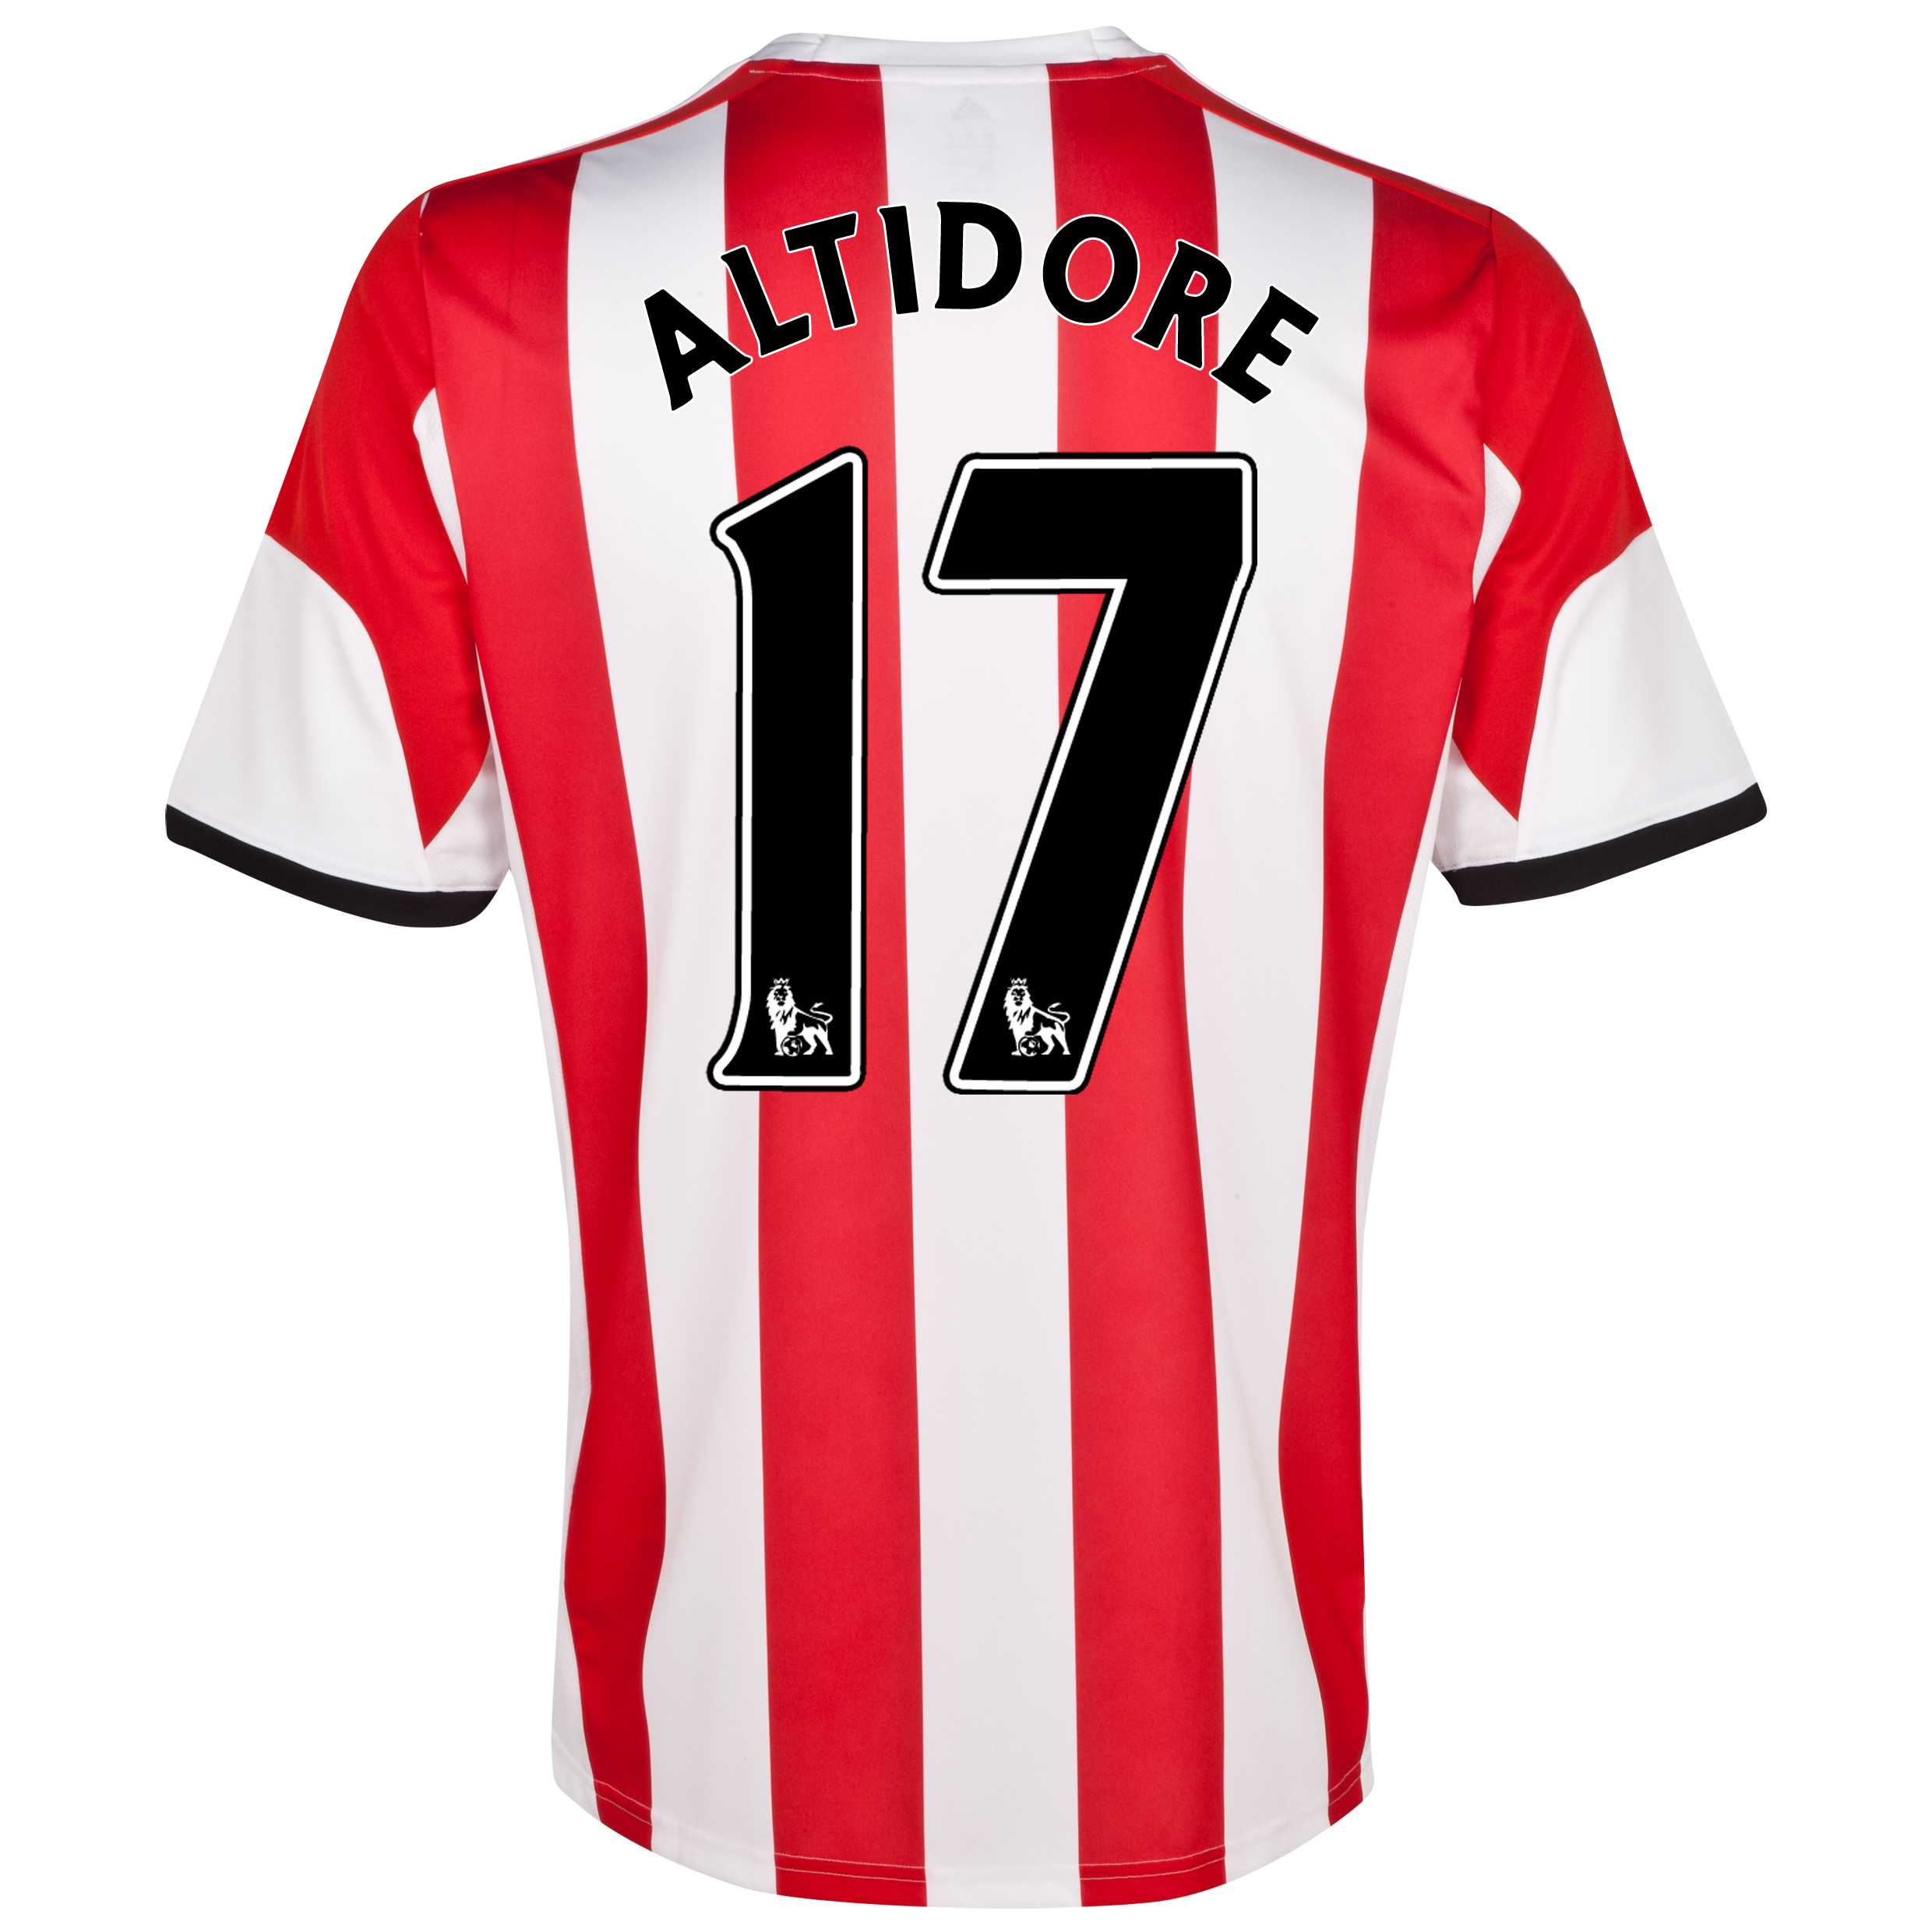 Sunderland Home Shirt 2013/14 - Junior with Altidore 17 printing